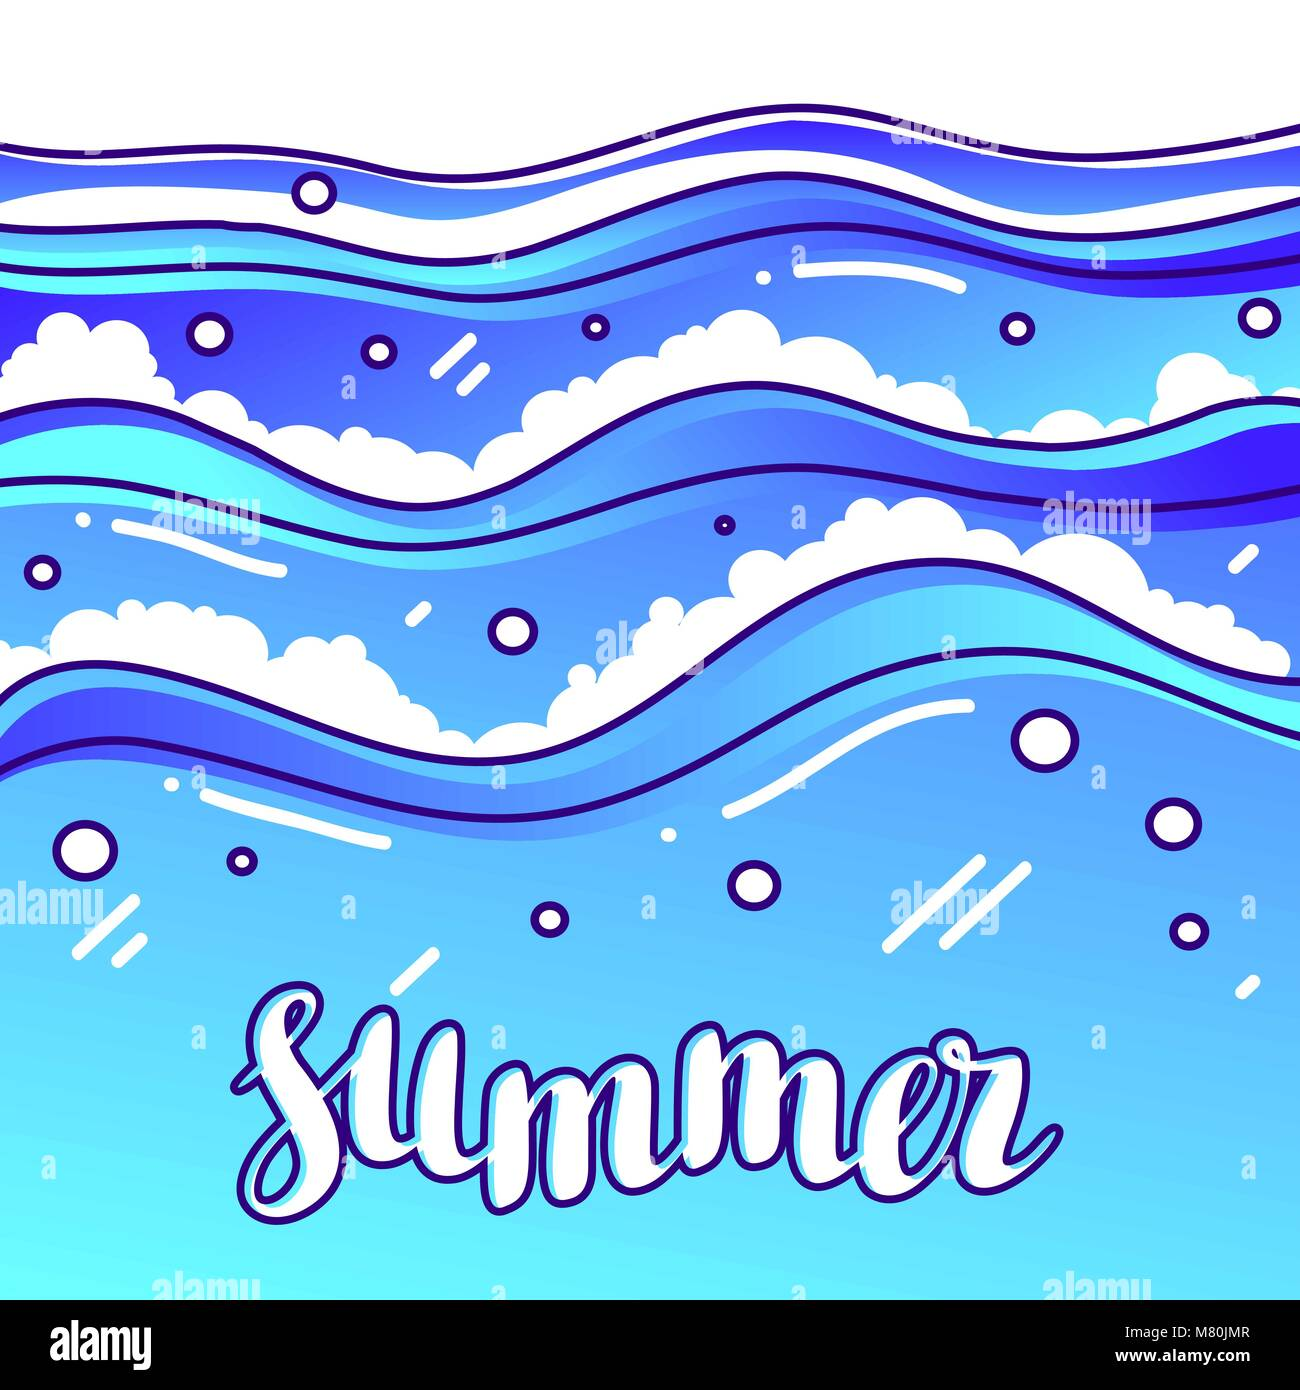 Summer at seaside. Stylized illustration of waves - Stock Vector